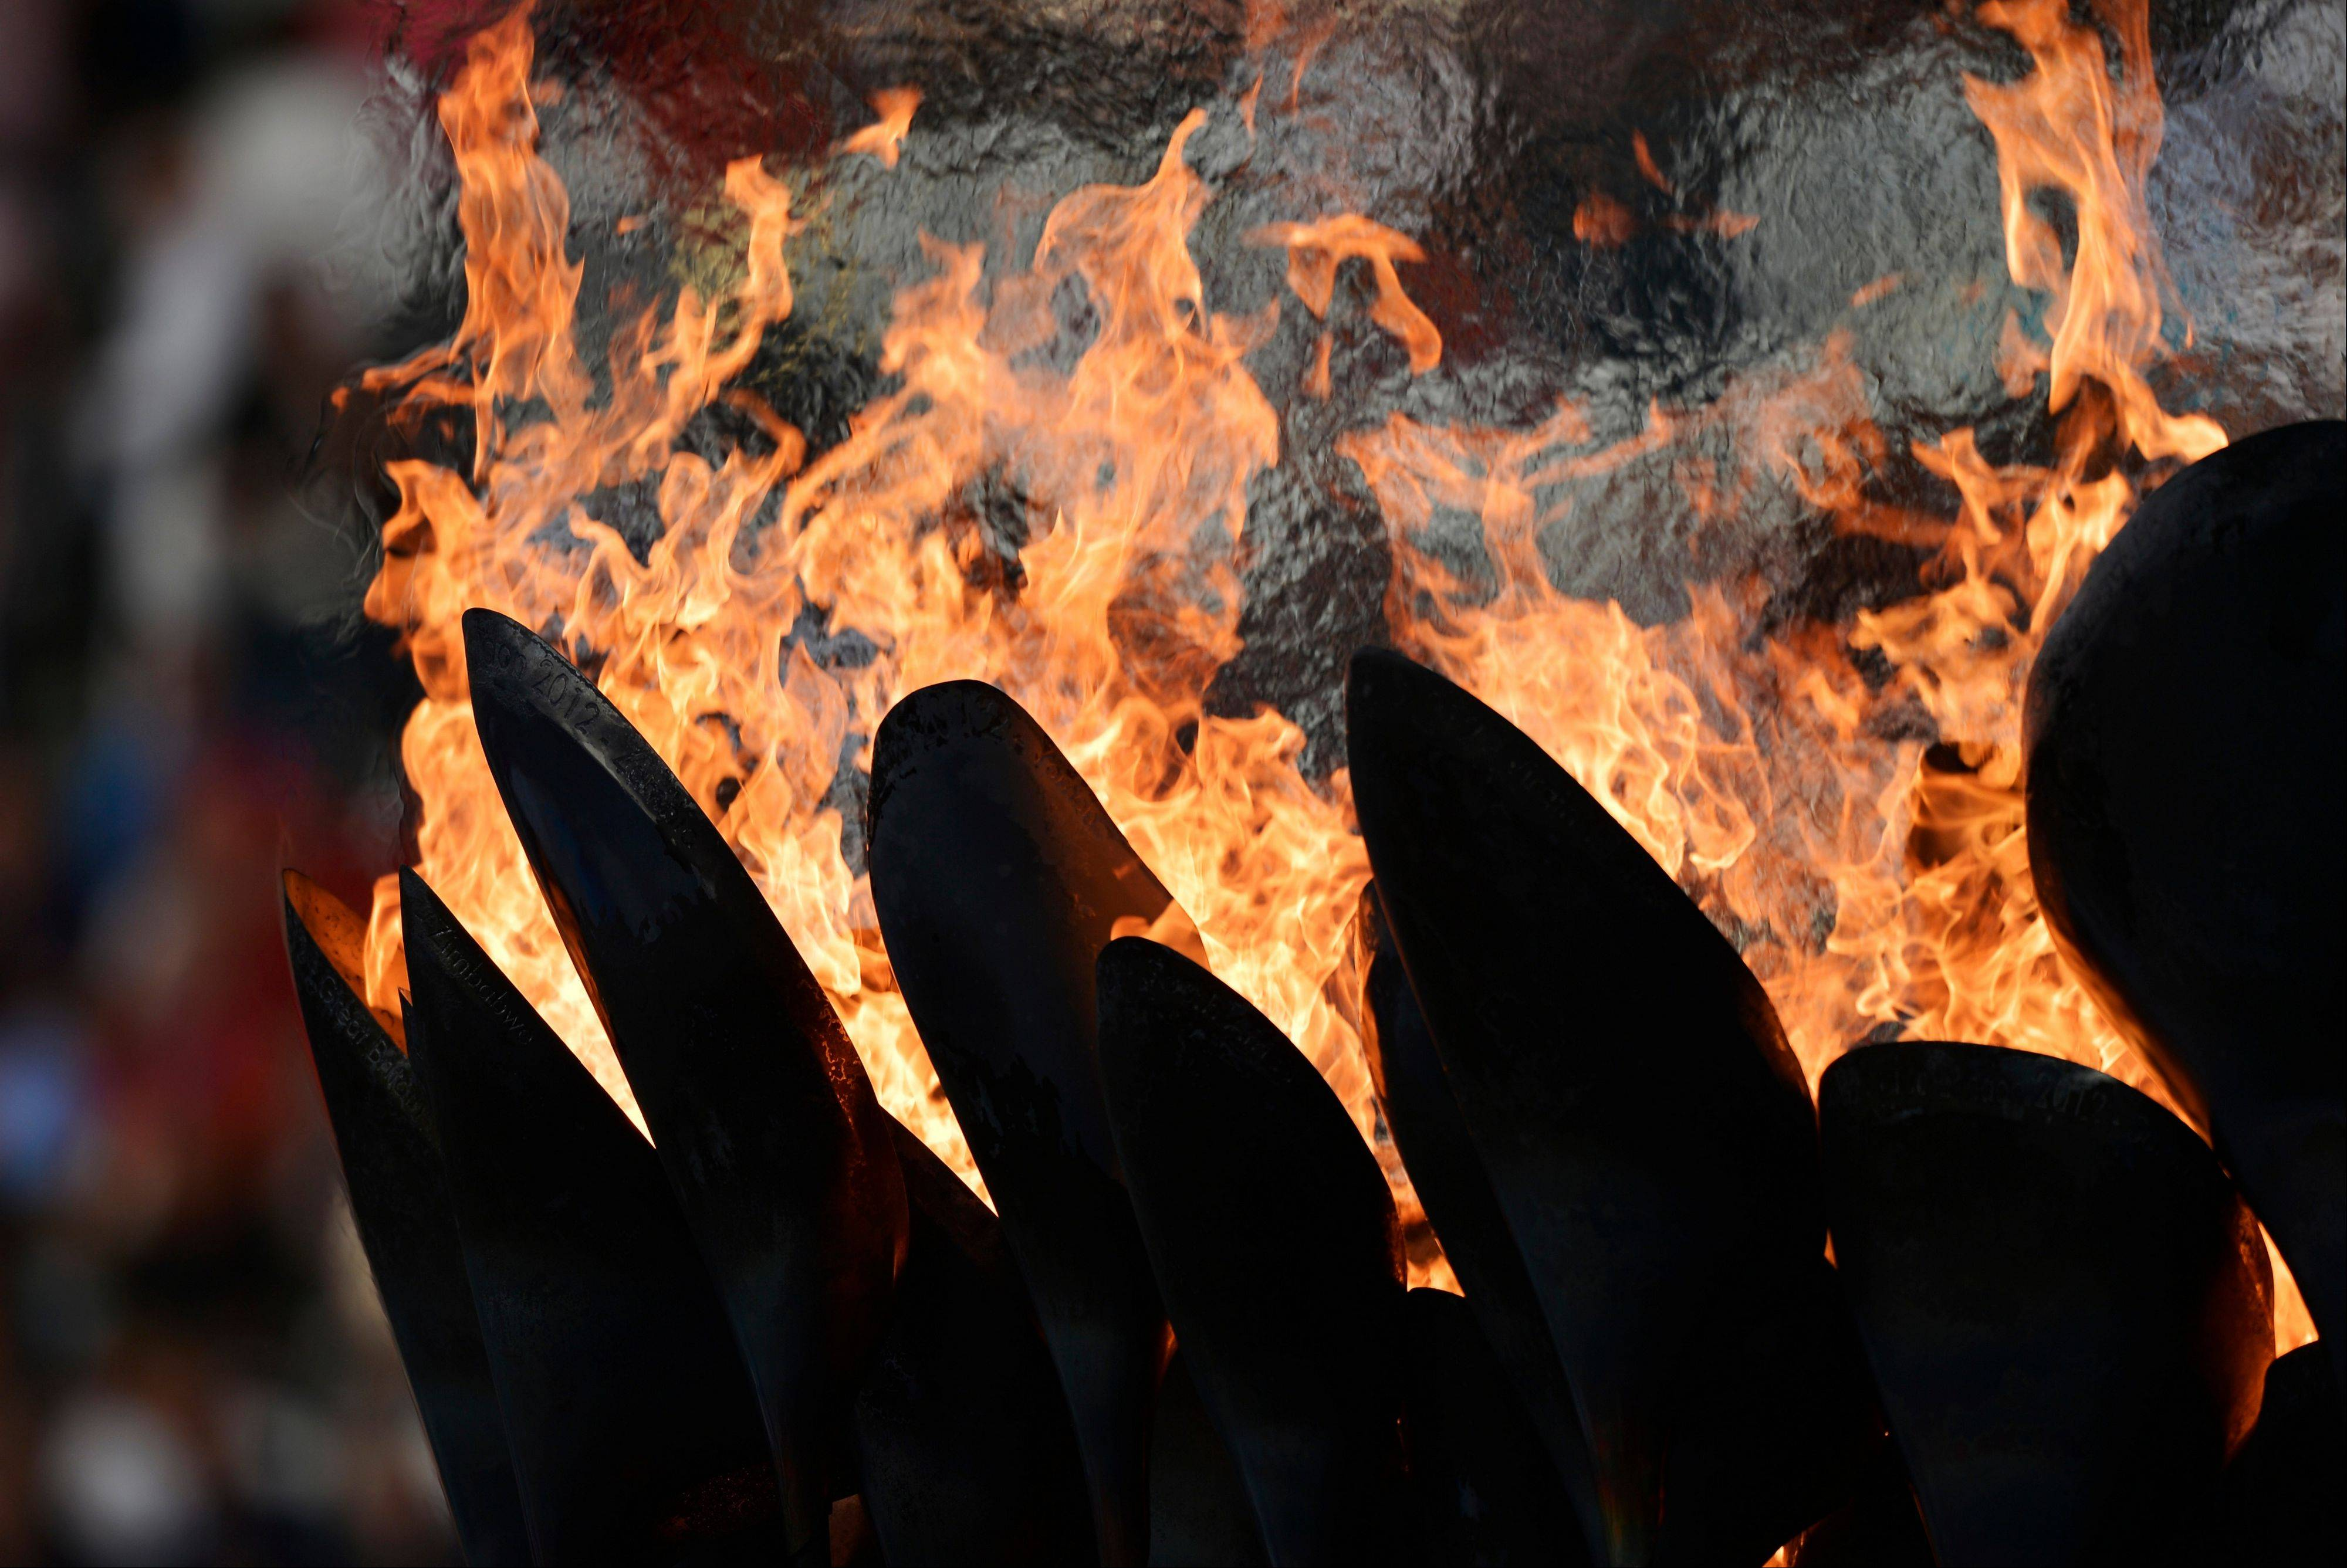 The Olympic flame burns in the Olympic Stadium before the start of the Closing Ceremony at the 2012 Summer Olympics.